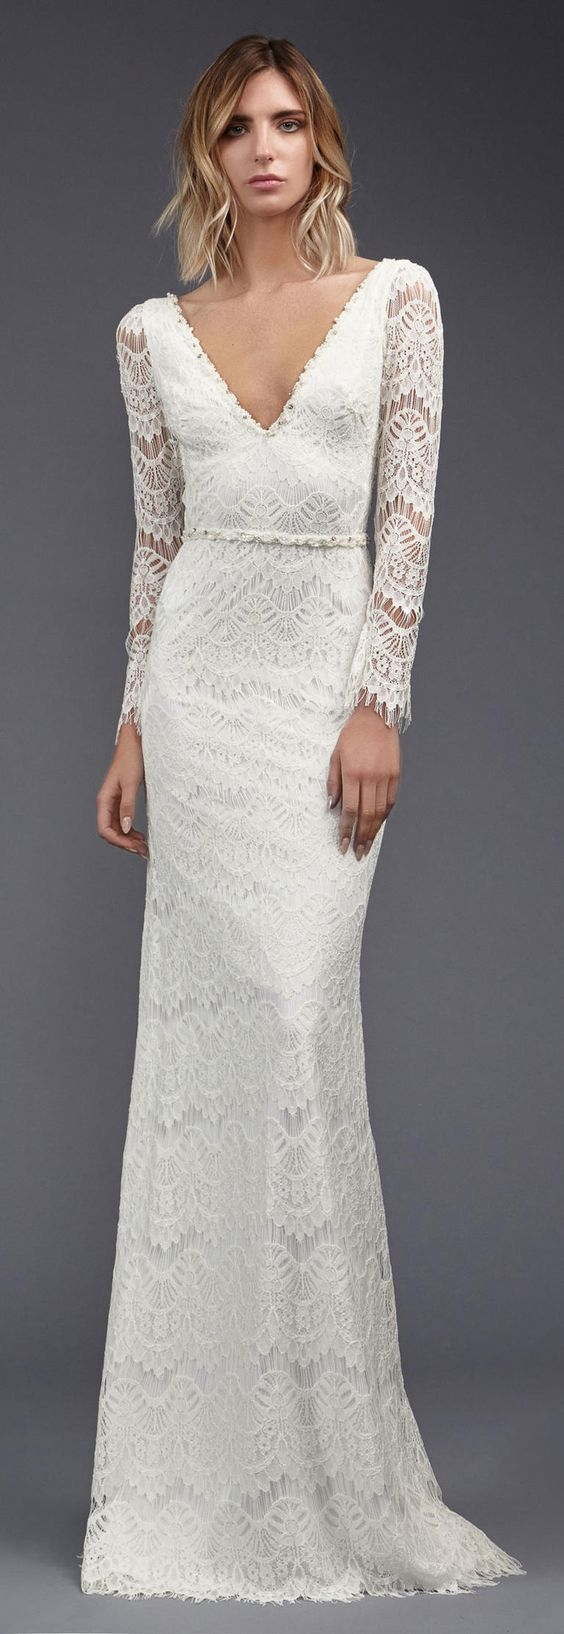 Victoria Kyriakides wedding dress 2017 - long sleeve all over crochet lace…